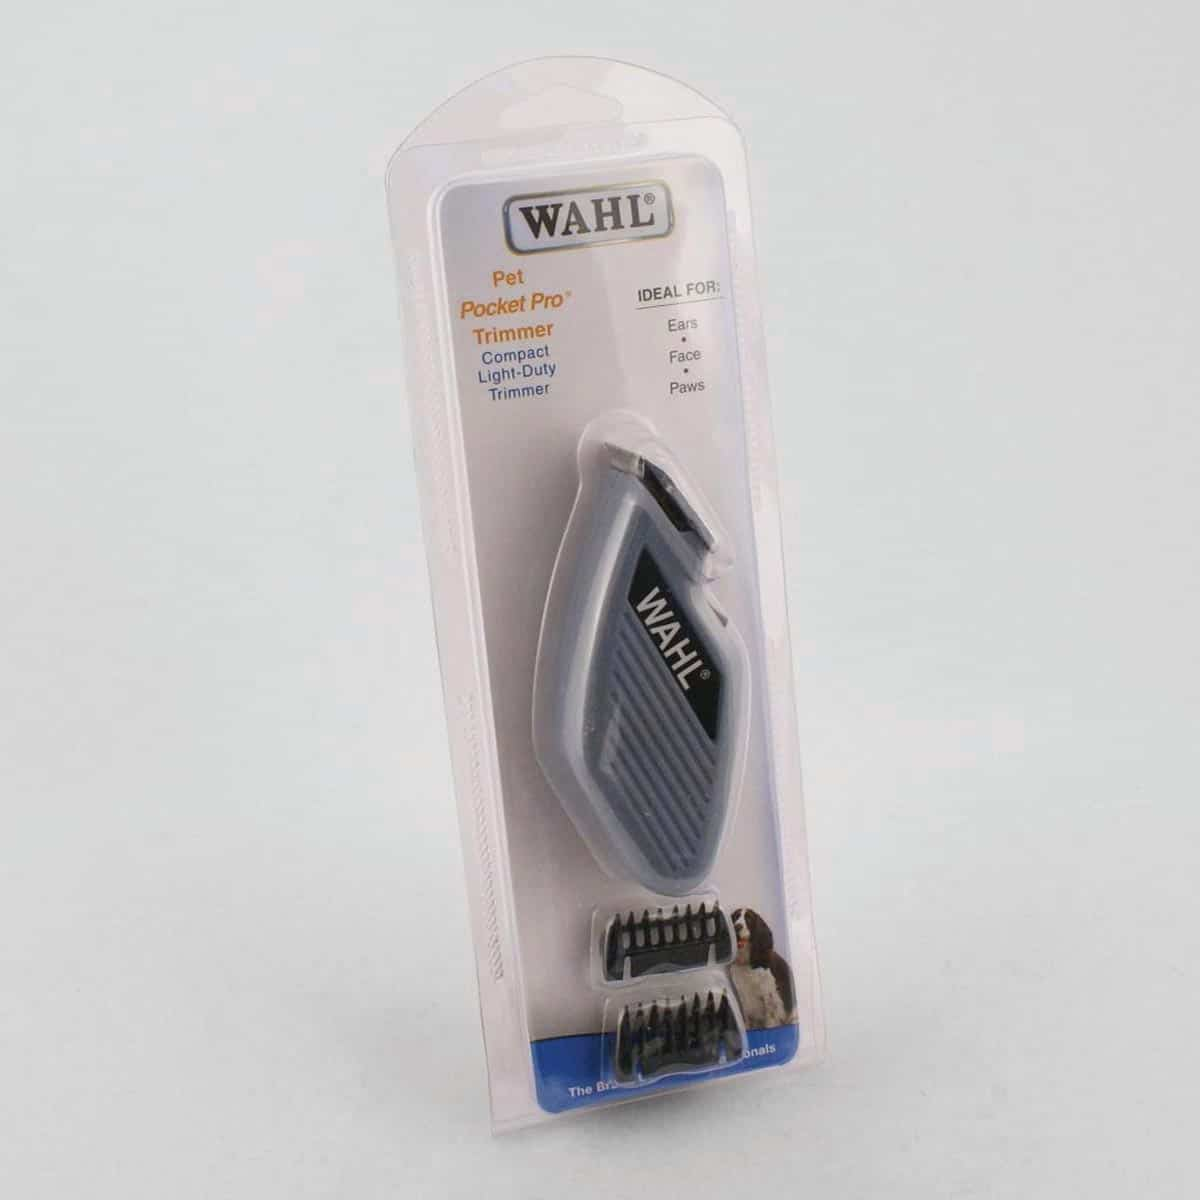 wahl pocket pro trimmer instructions